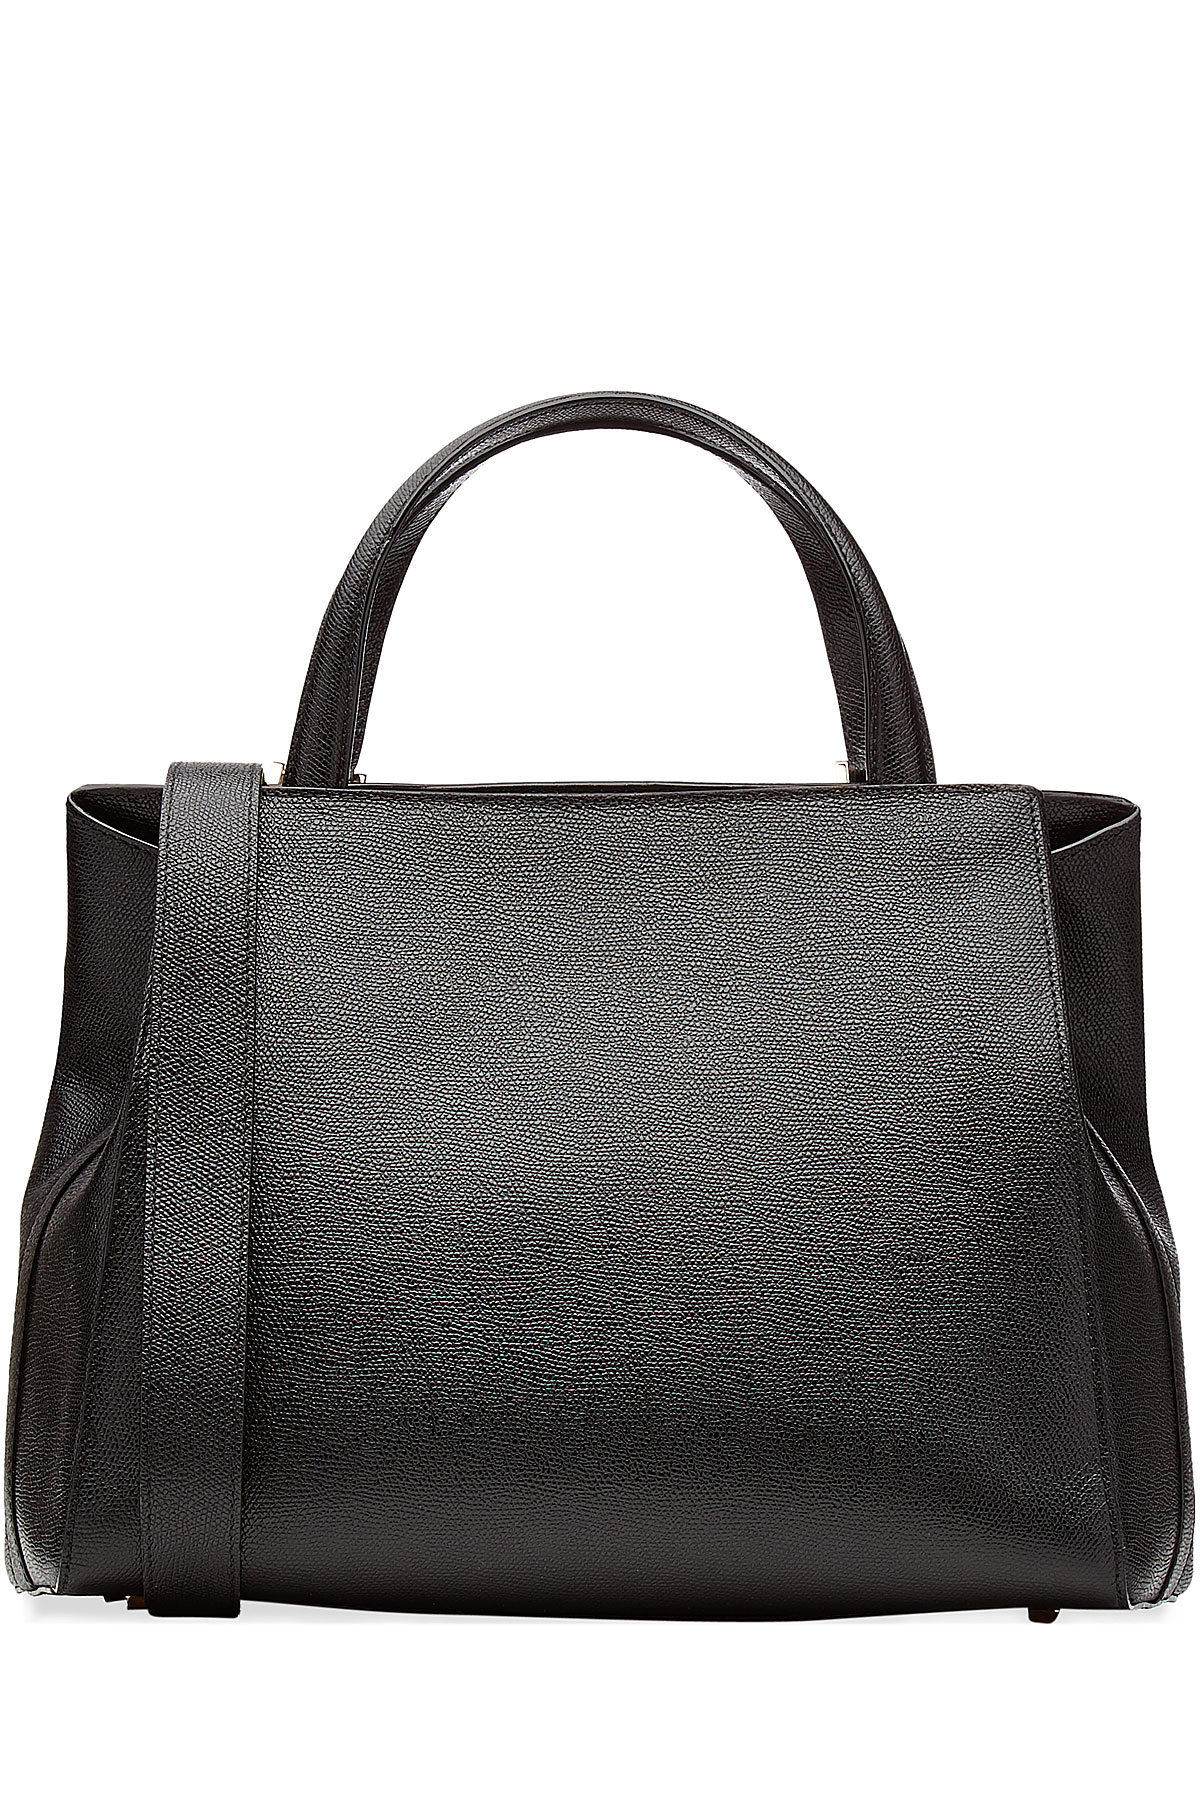 Lyst - Valextra Tranali Leather Tote